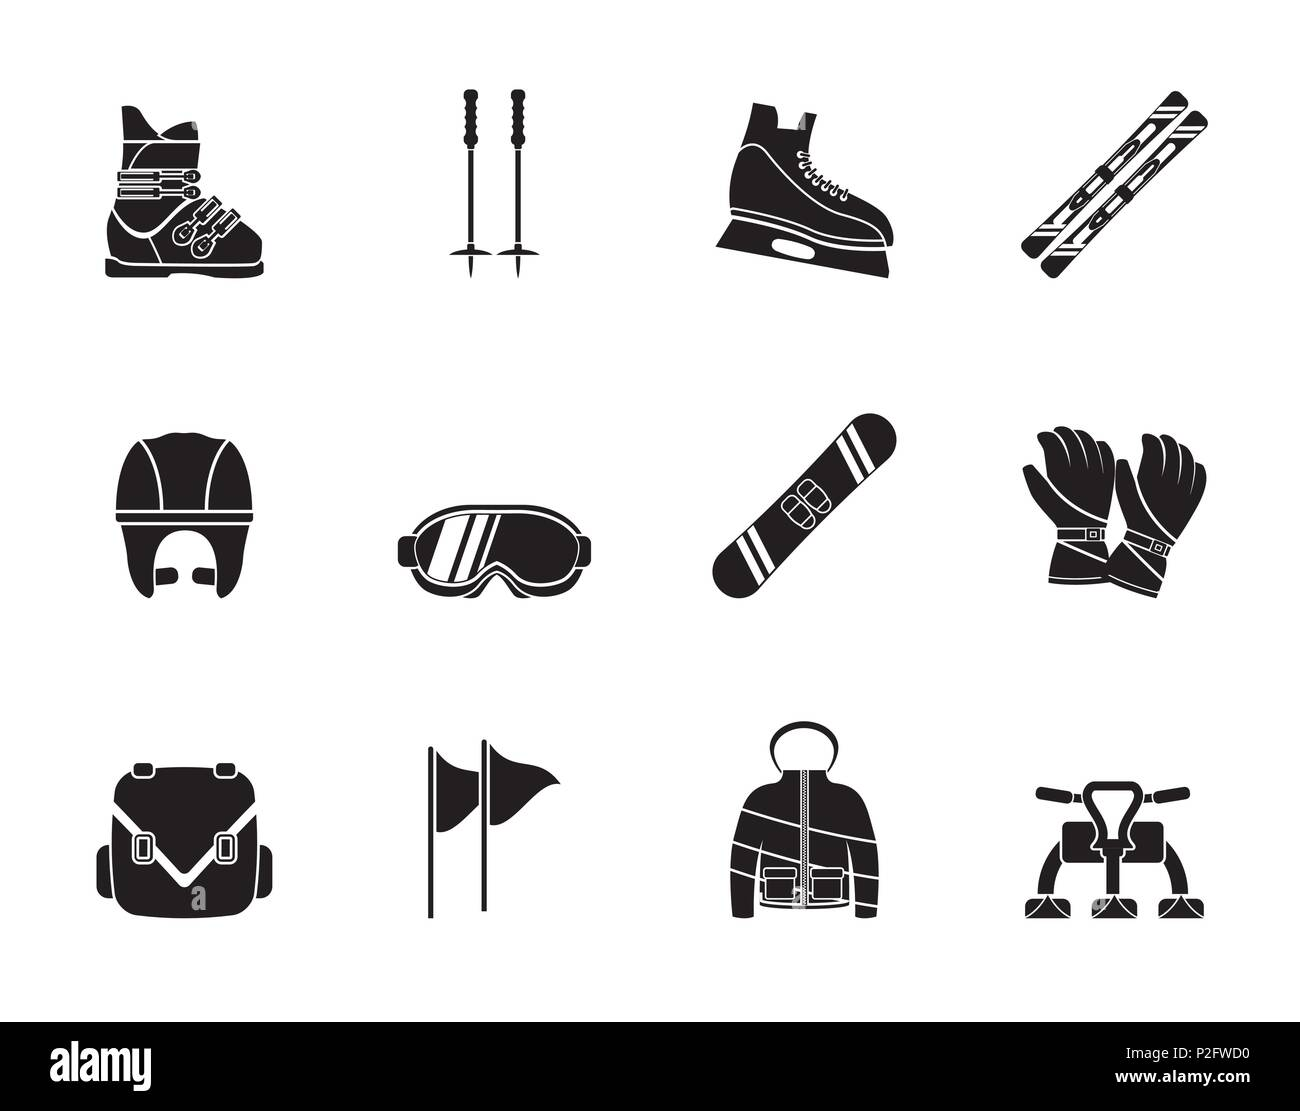 Silhouette ski and snowboard equipment icons - vector icon set - Stock Image